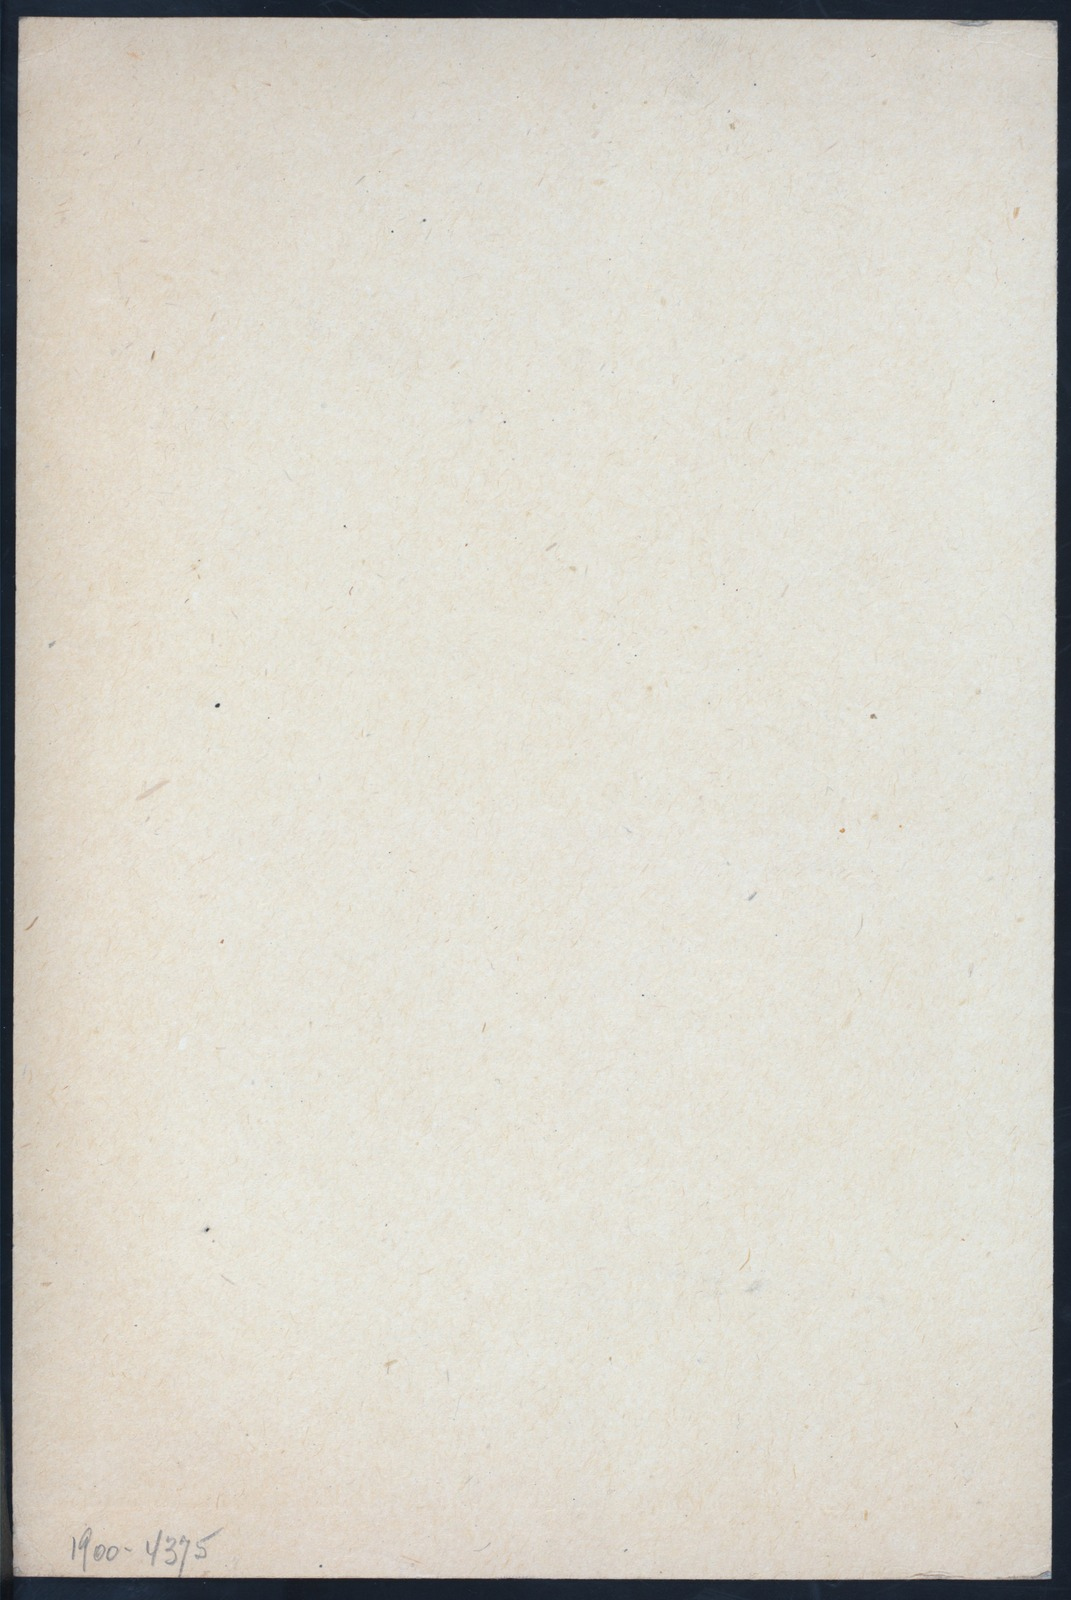 """DINNER [held by] MENZIE'S HOTEL [at] """"MELBOURNE,AUSTRALIA"""" (FOREIGN;HOTEL;)"""